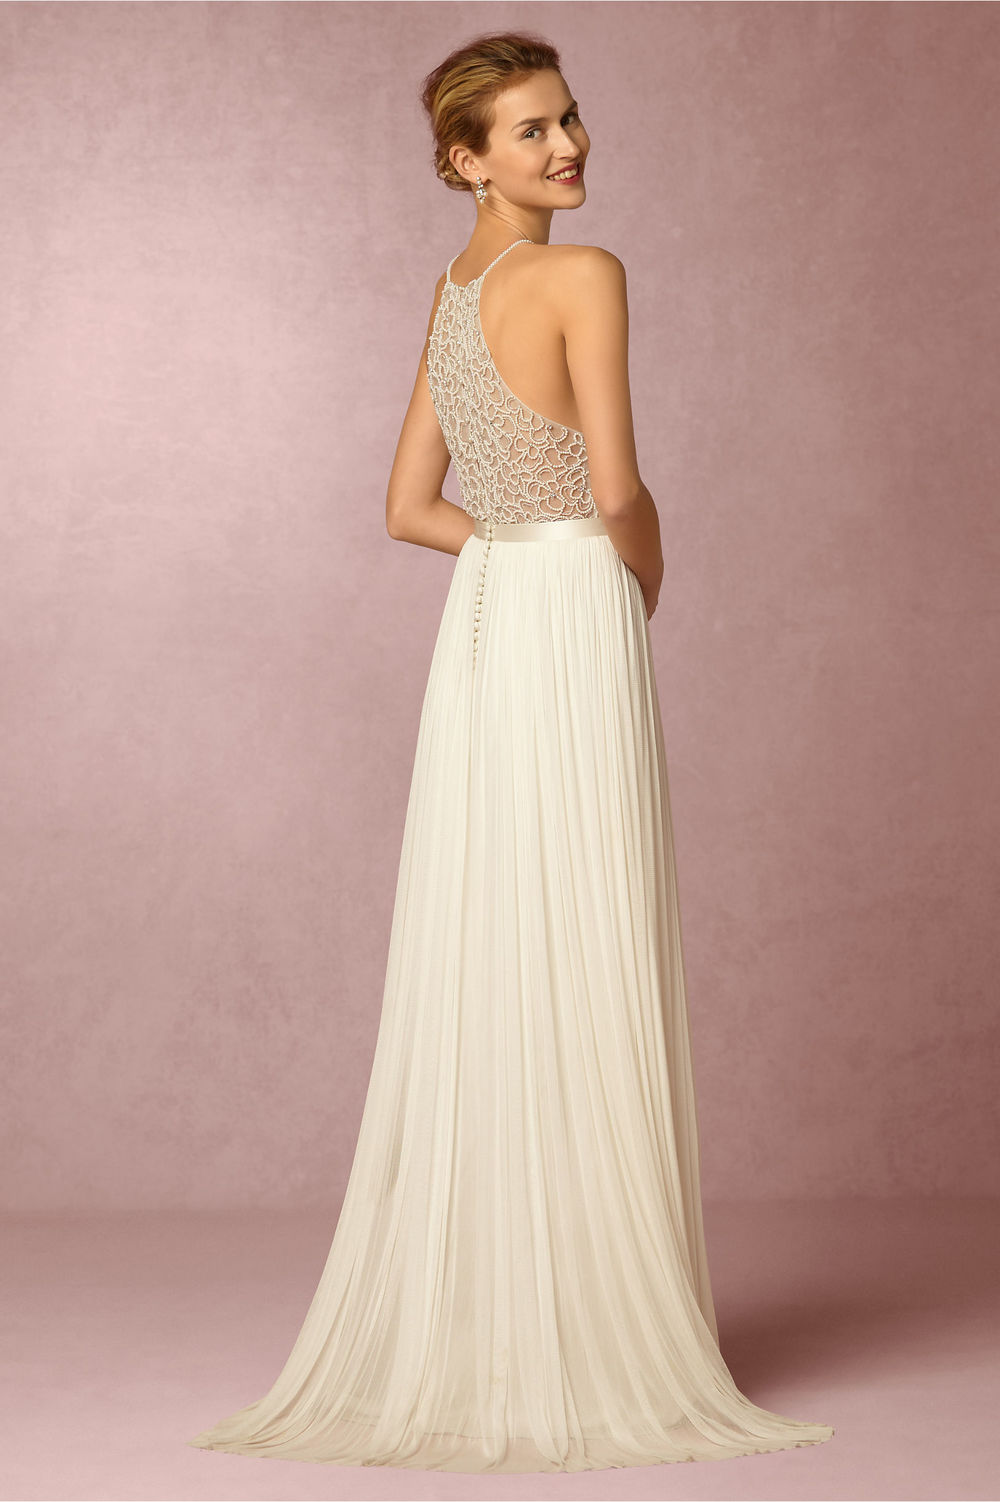 Bridal Separates from BHLDN — The Overwhelmed Bride // Wedding Blog ...